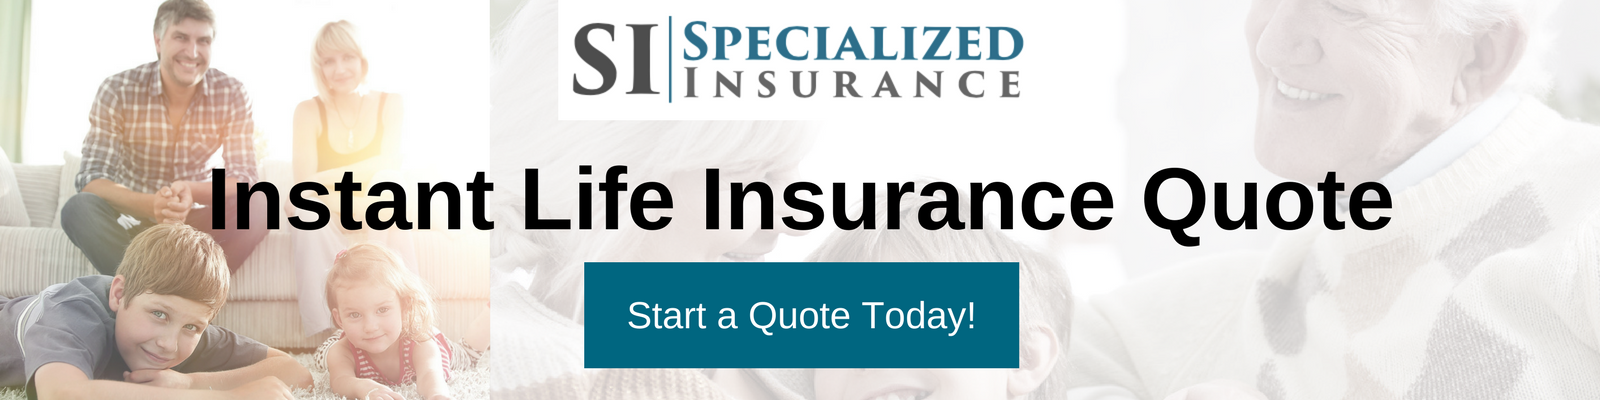 Instant Life Insurance Quote